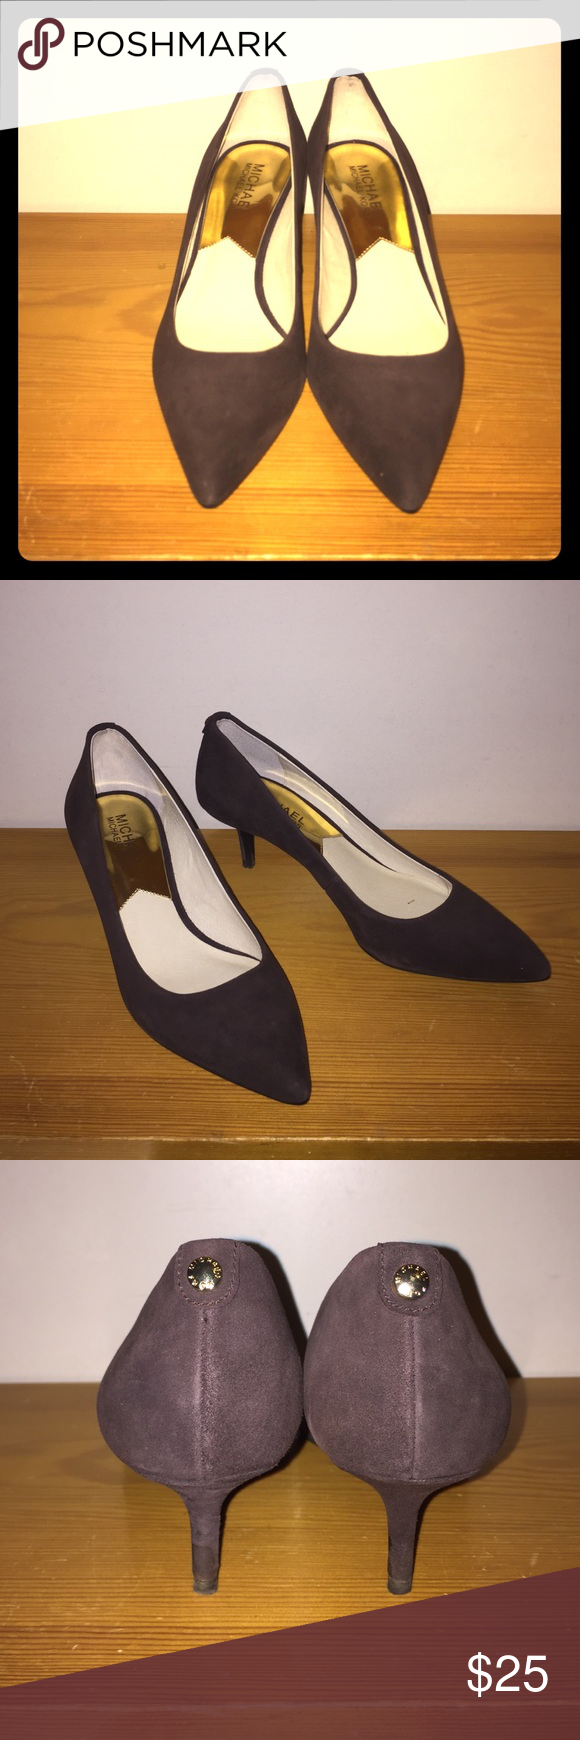 """Michael Kors Flex Kitten Suede Pump Brown suede lining, pointed toe, gold embroidery pin on back, 2"""" heel, classy, comfortable pumps! Worn 1-2 times and in great condition Michael Kors Shoes Heels"""